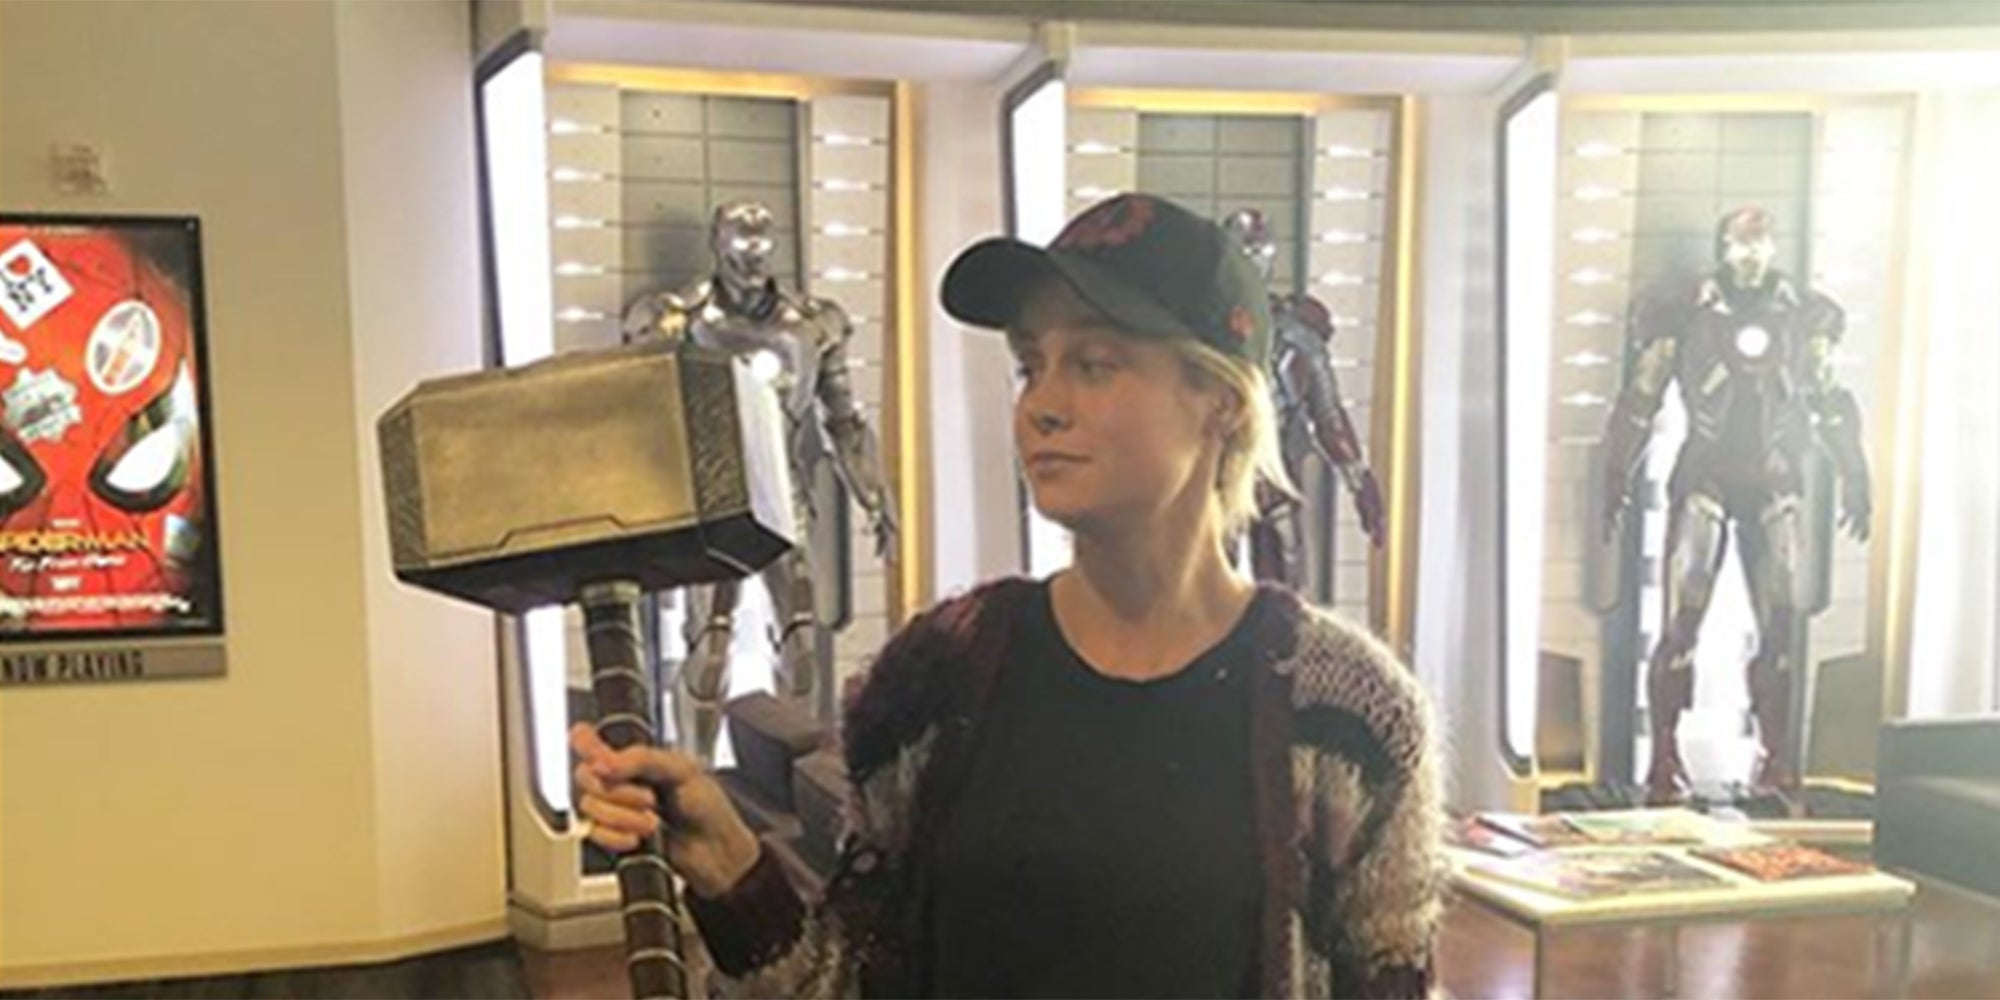 Brie Larson posed with Thor's hammer and it upset a lot of fanboys